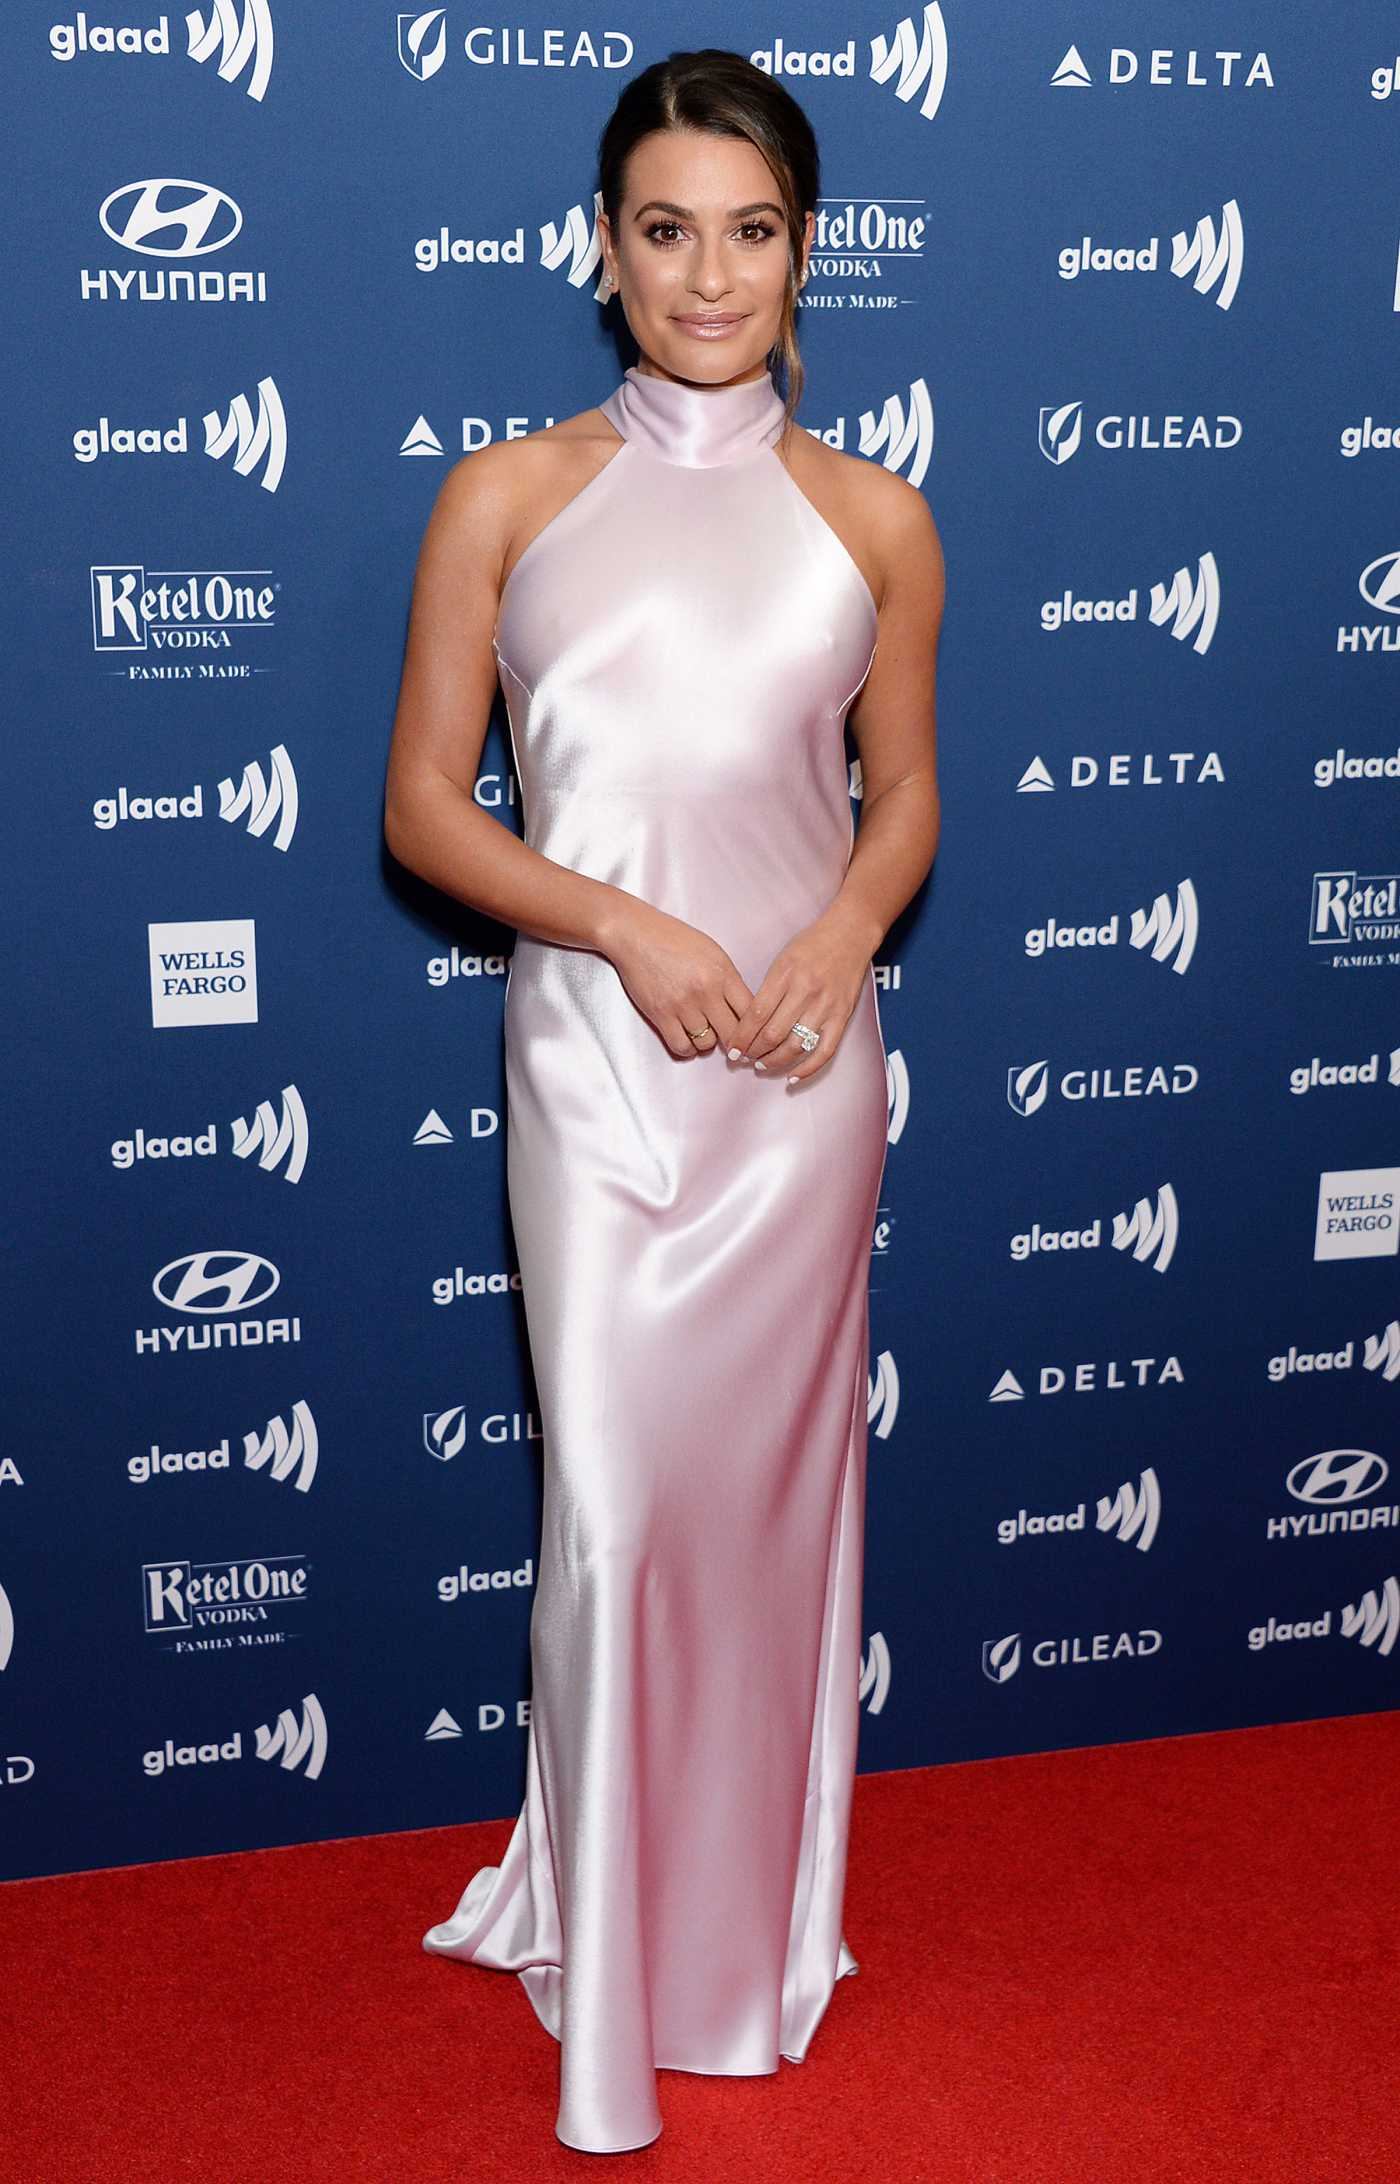 Lea Michele Attends the 30th Annual GLAAD Media Awards Los Angeles at The Beverly Hilton Hotel in Beverly Hills 03/28/2019